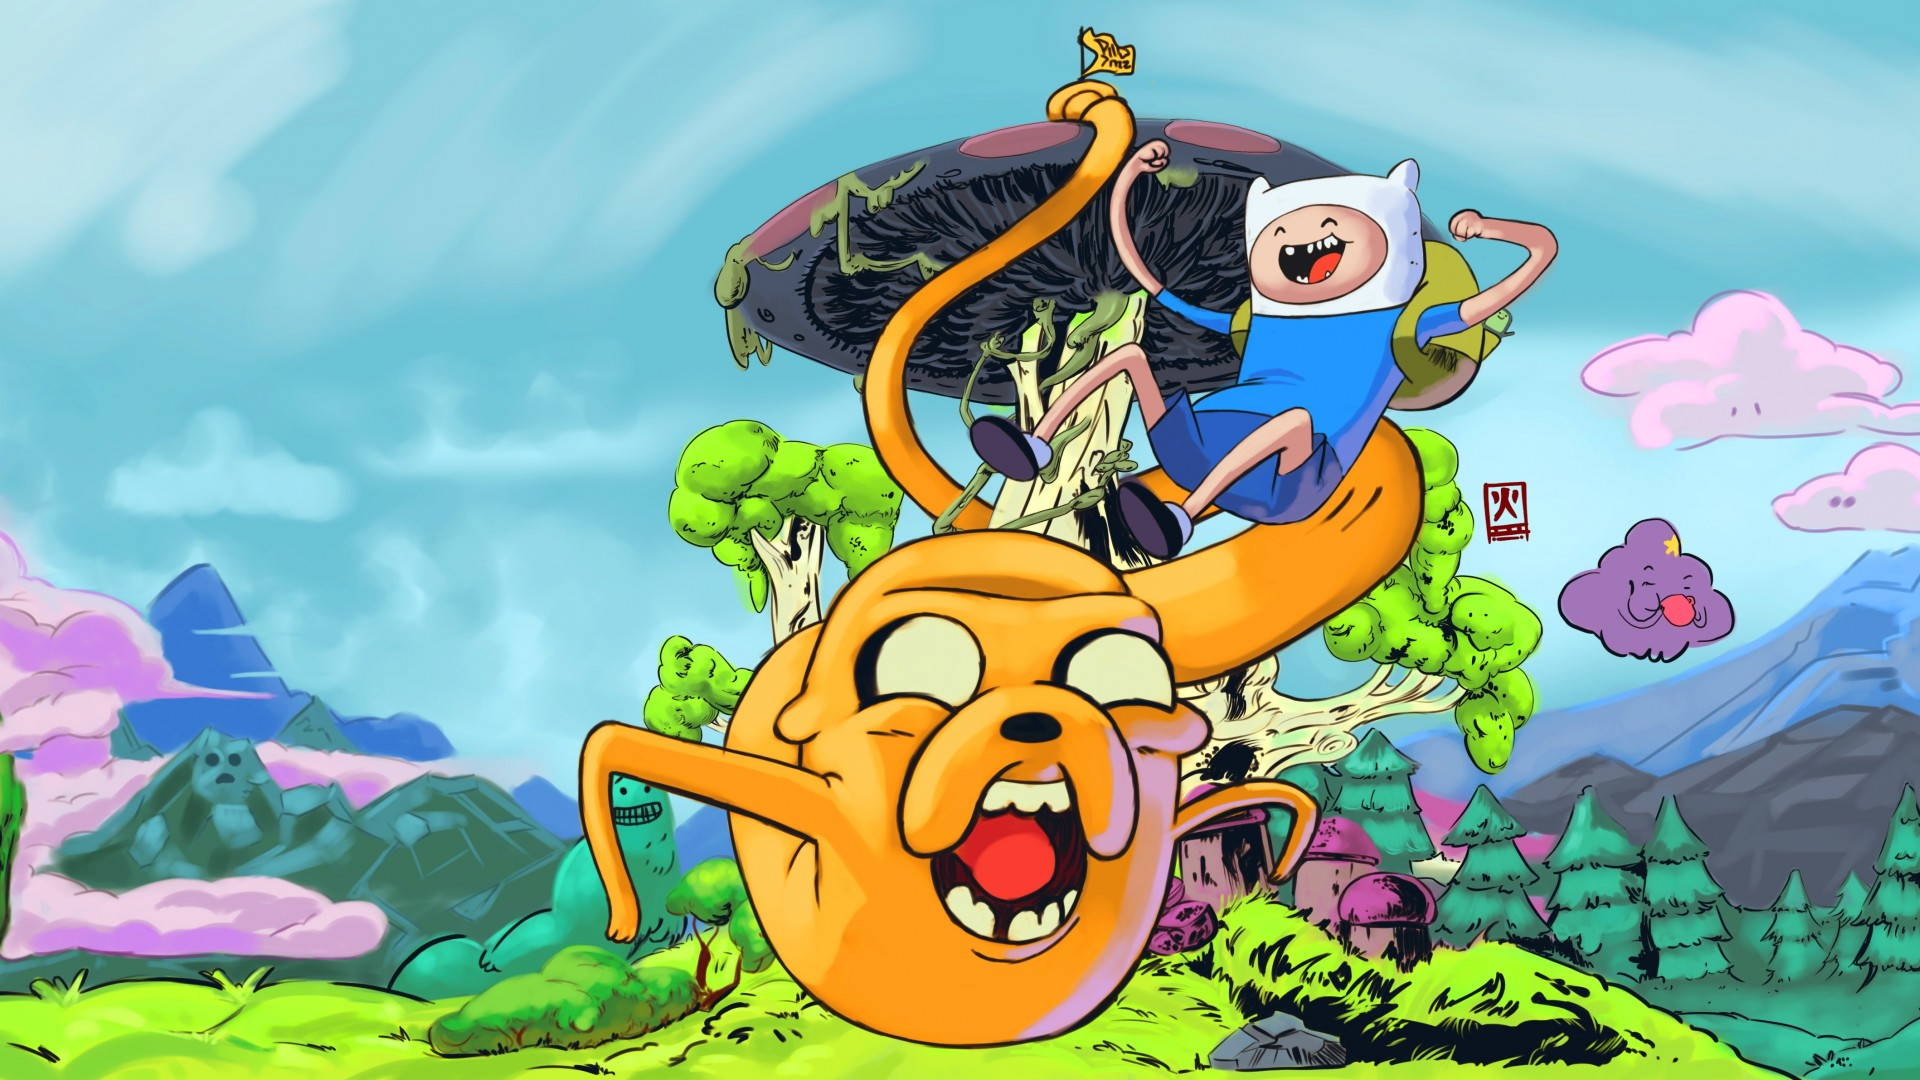 Adventure time wallpaper 1920x1080 37263 adventure time wallpaper altavistaventures Gallery